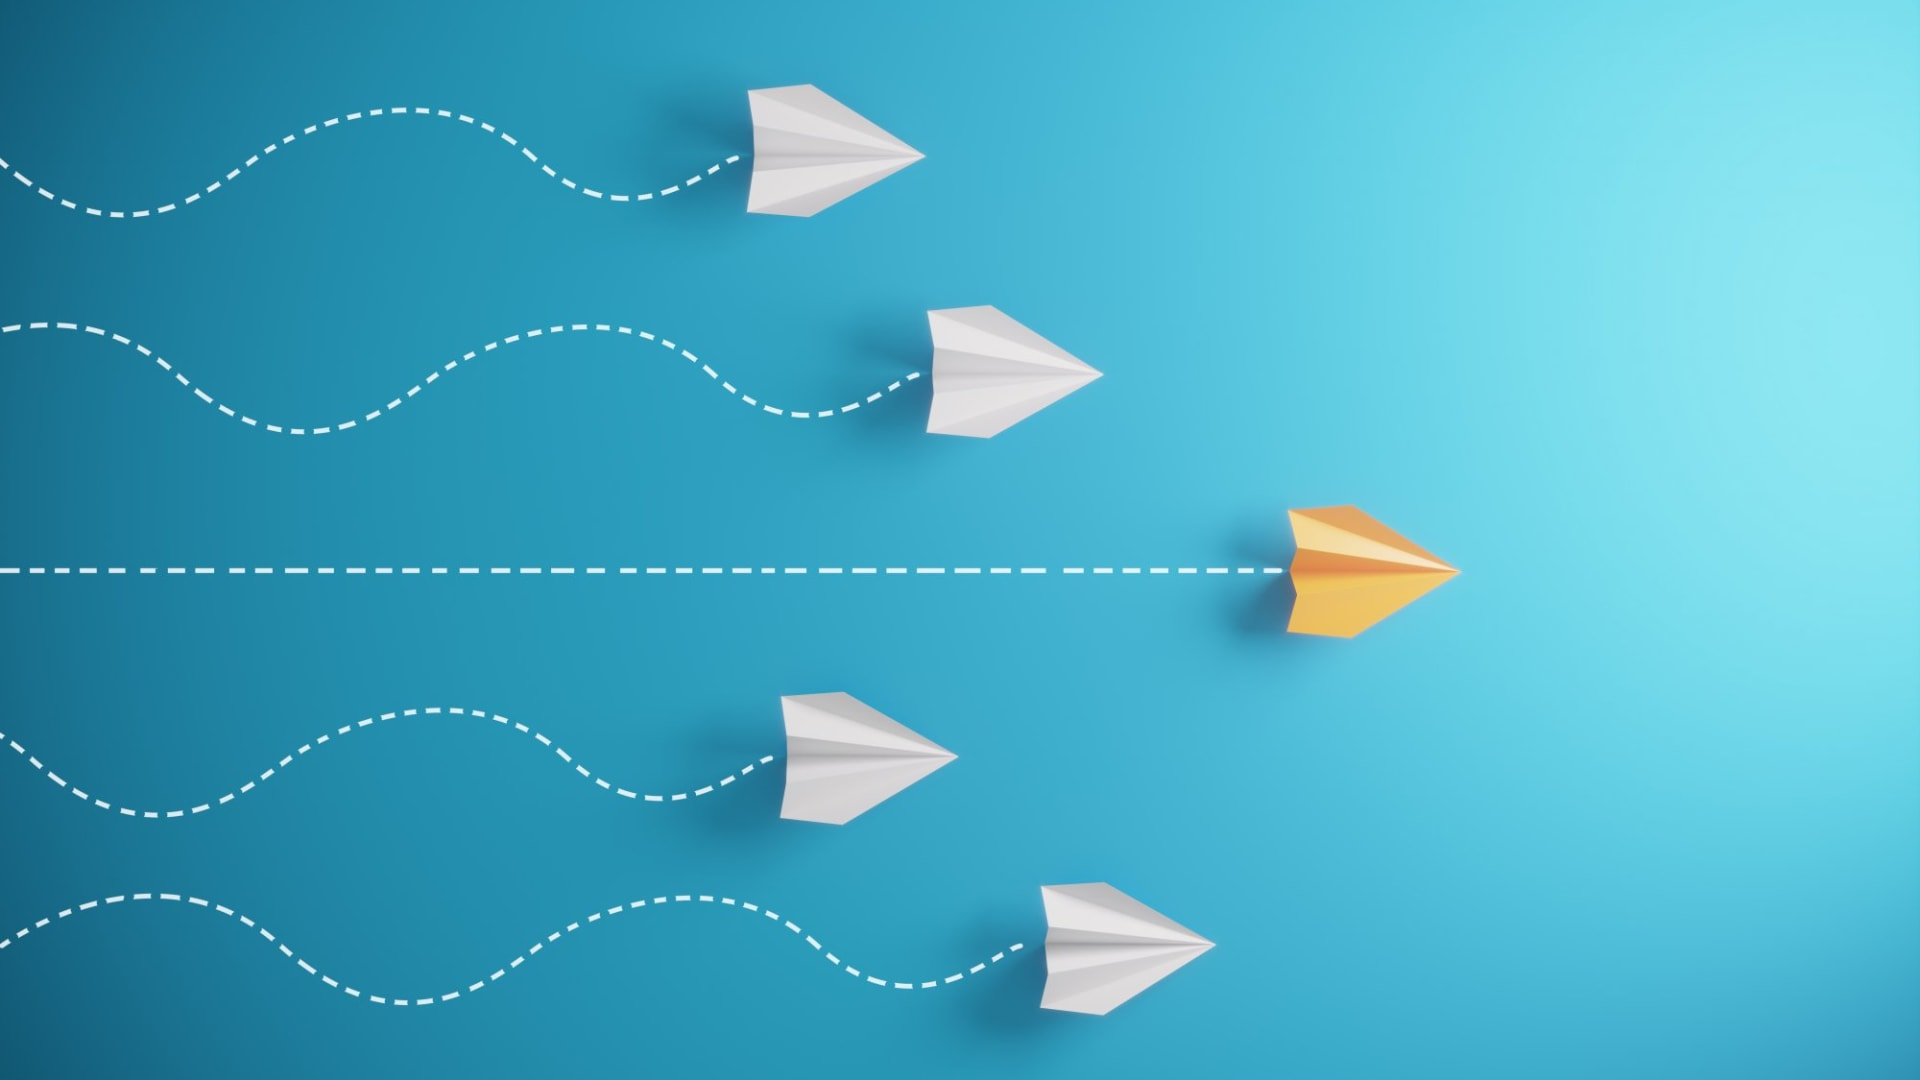 5 Positive Ways to Change Your Company for the Long-Term